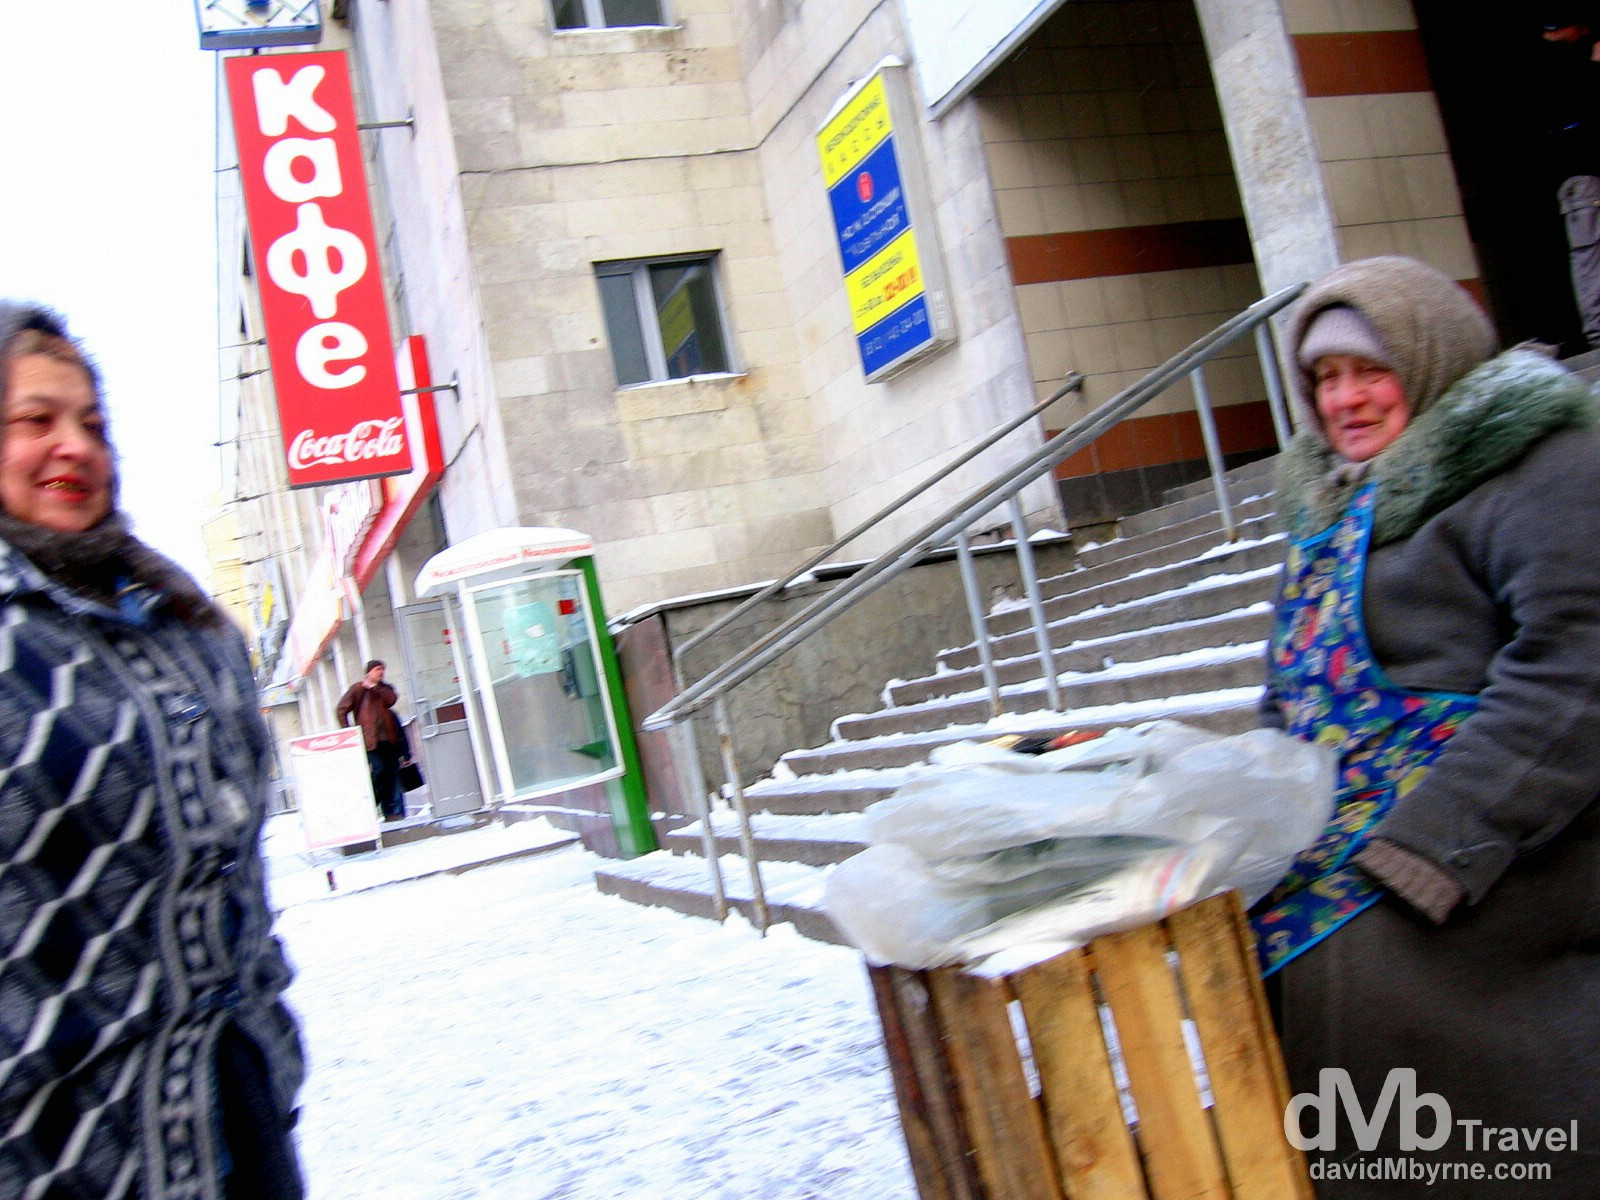 Outside Finland Station in St. Petersburg, Russia. February 28, 2006.